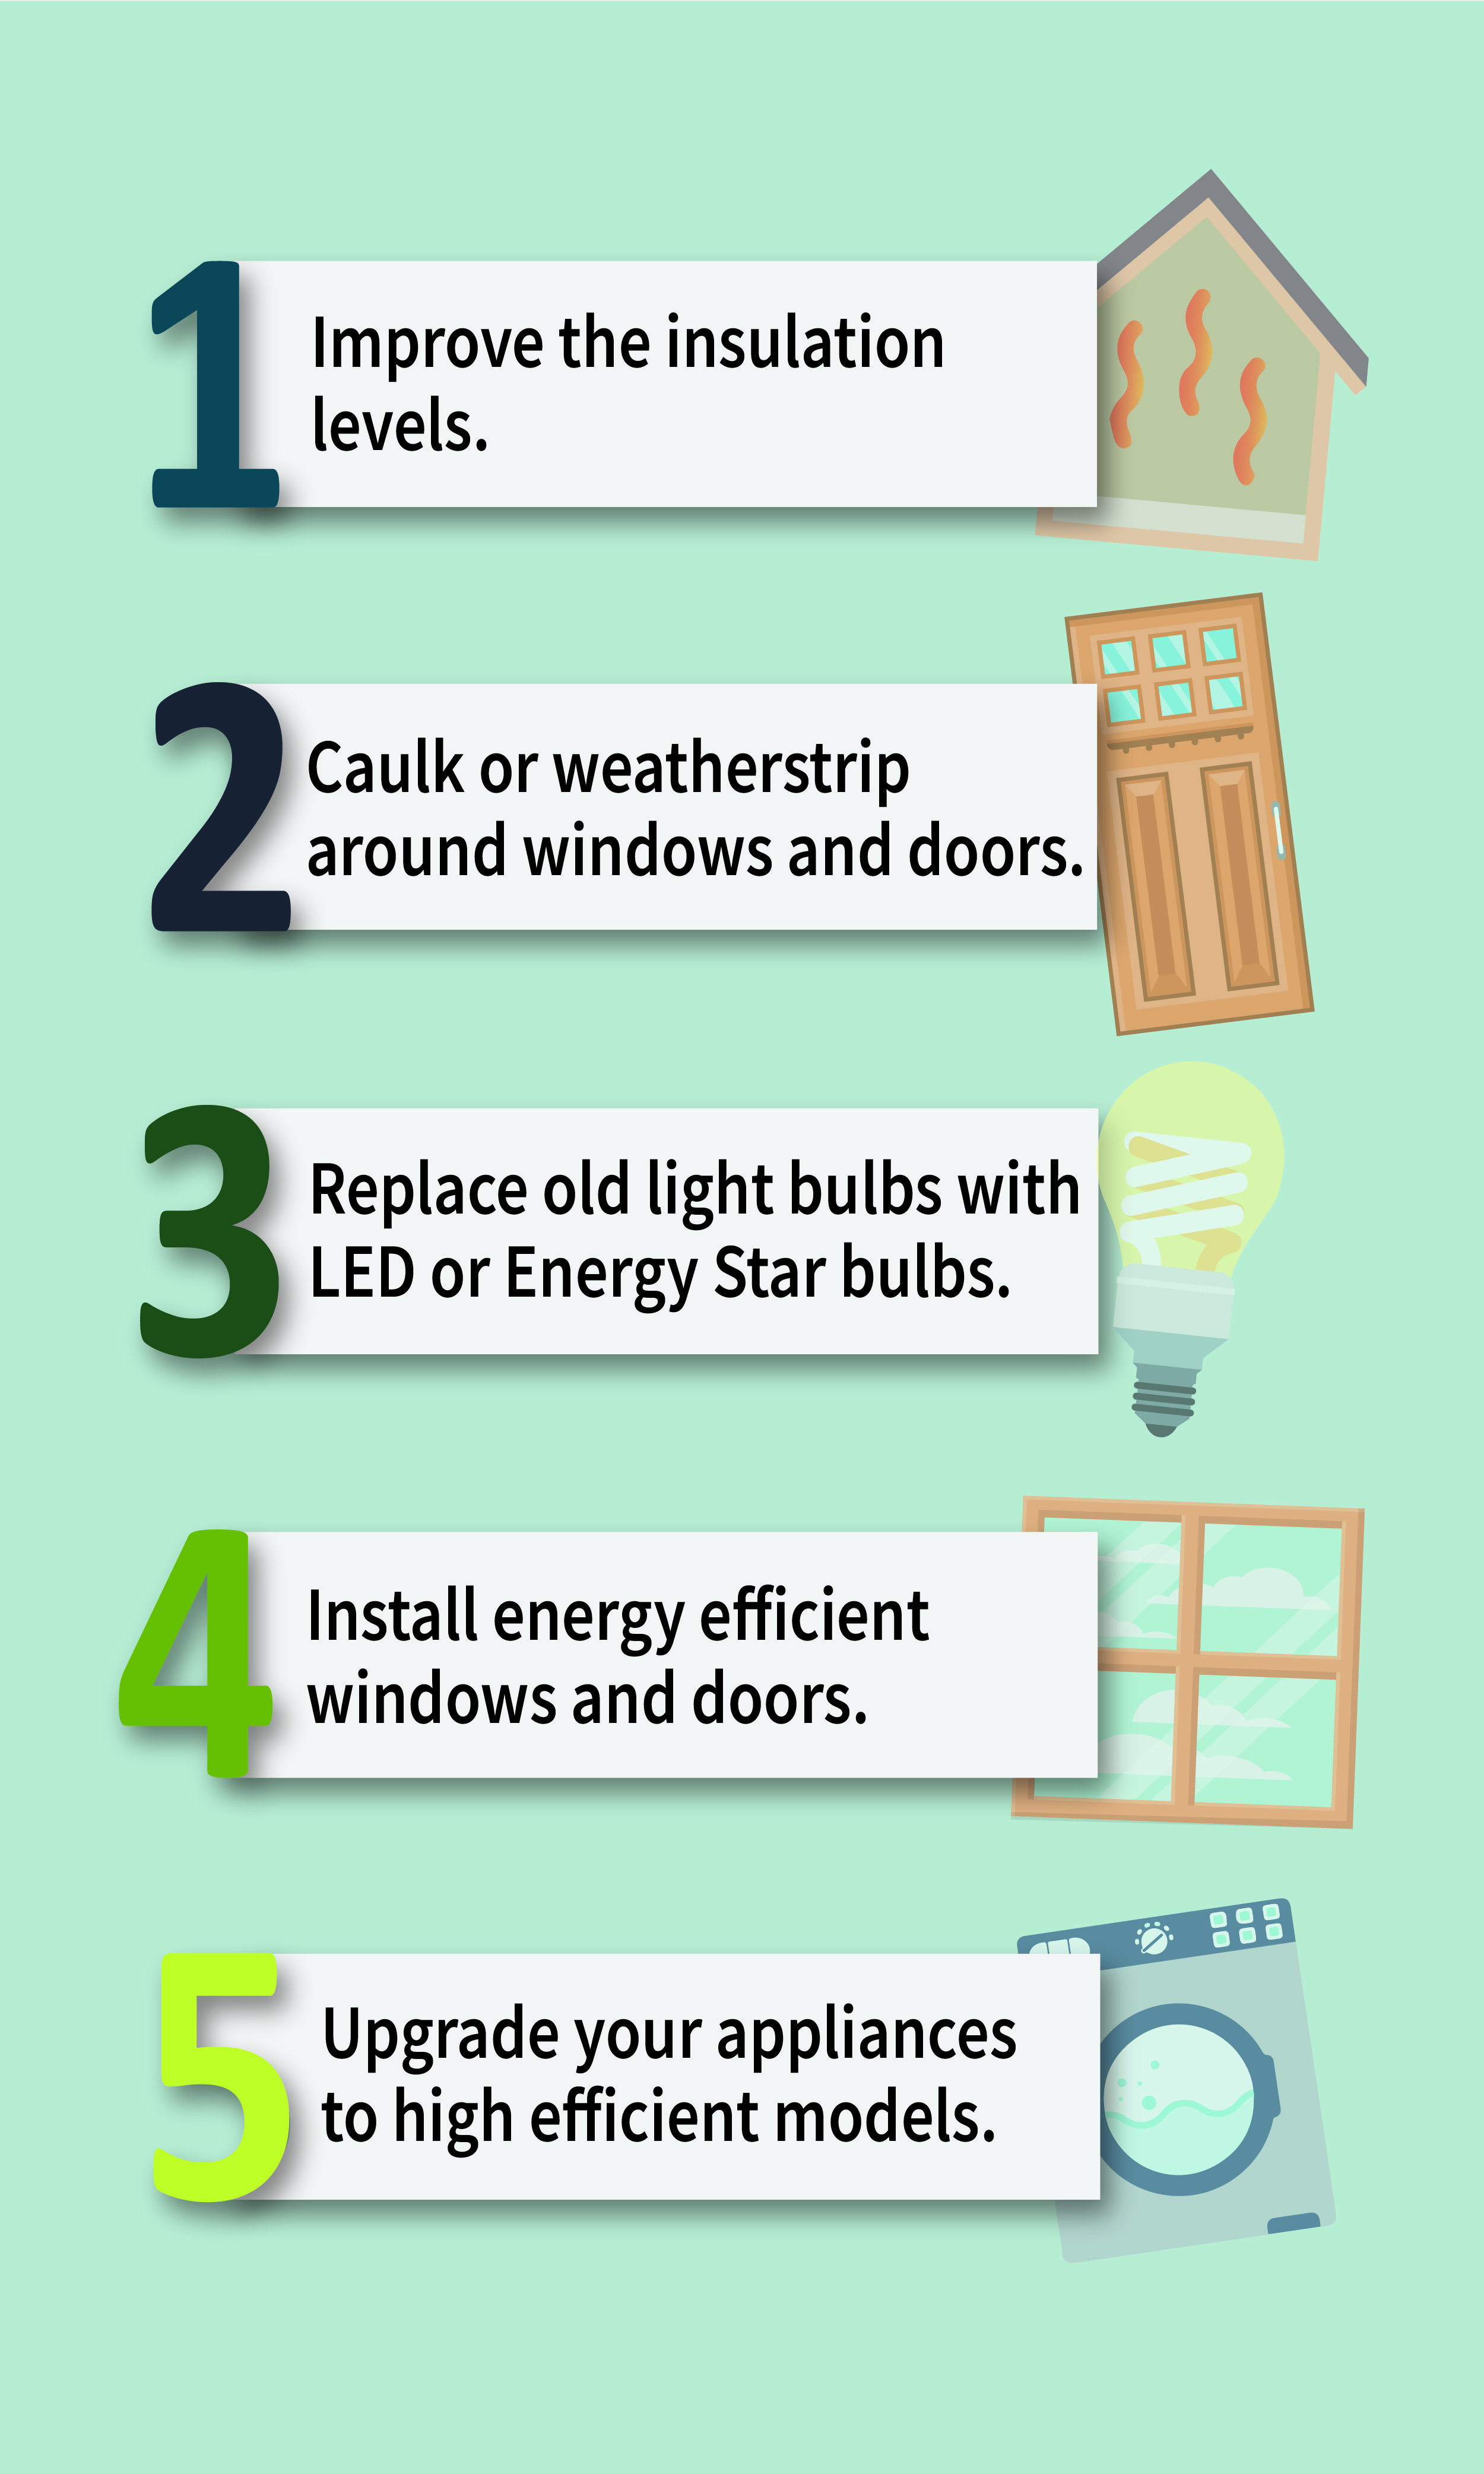 Top 10 upgrades for an energy efficient home